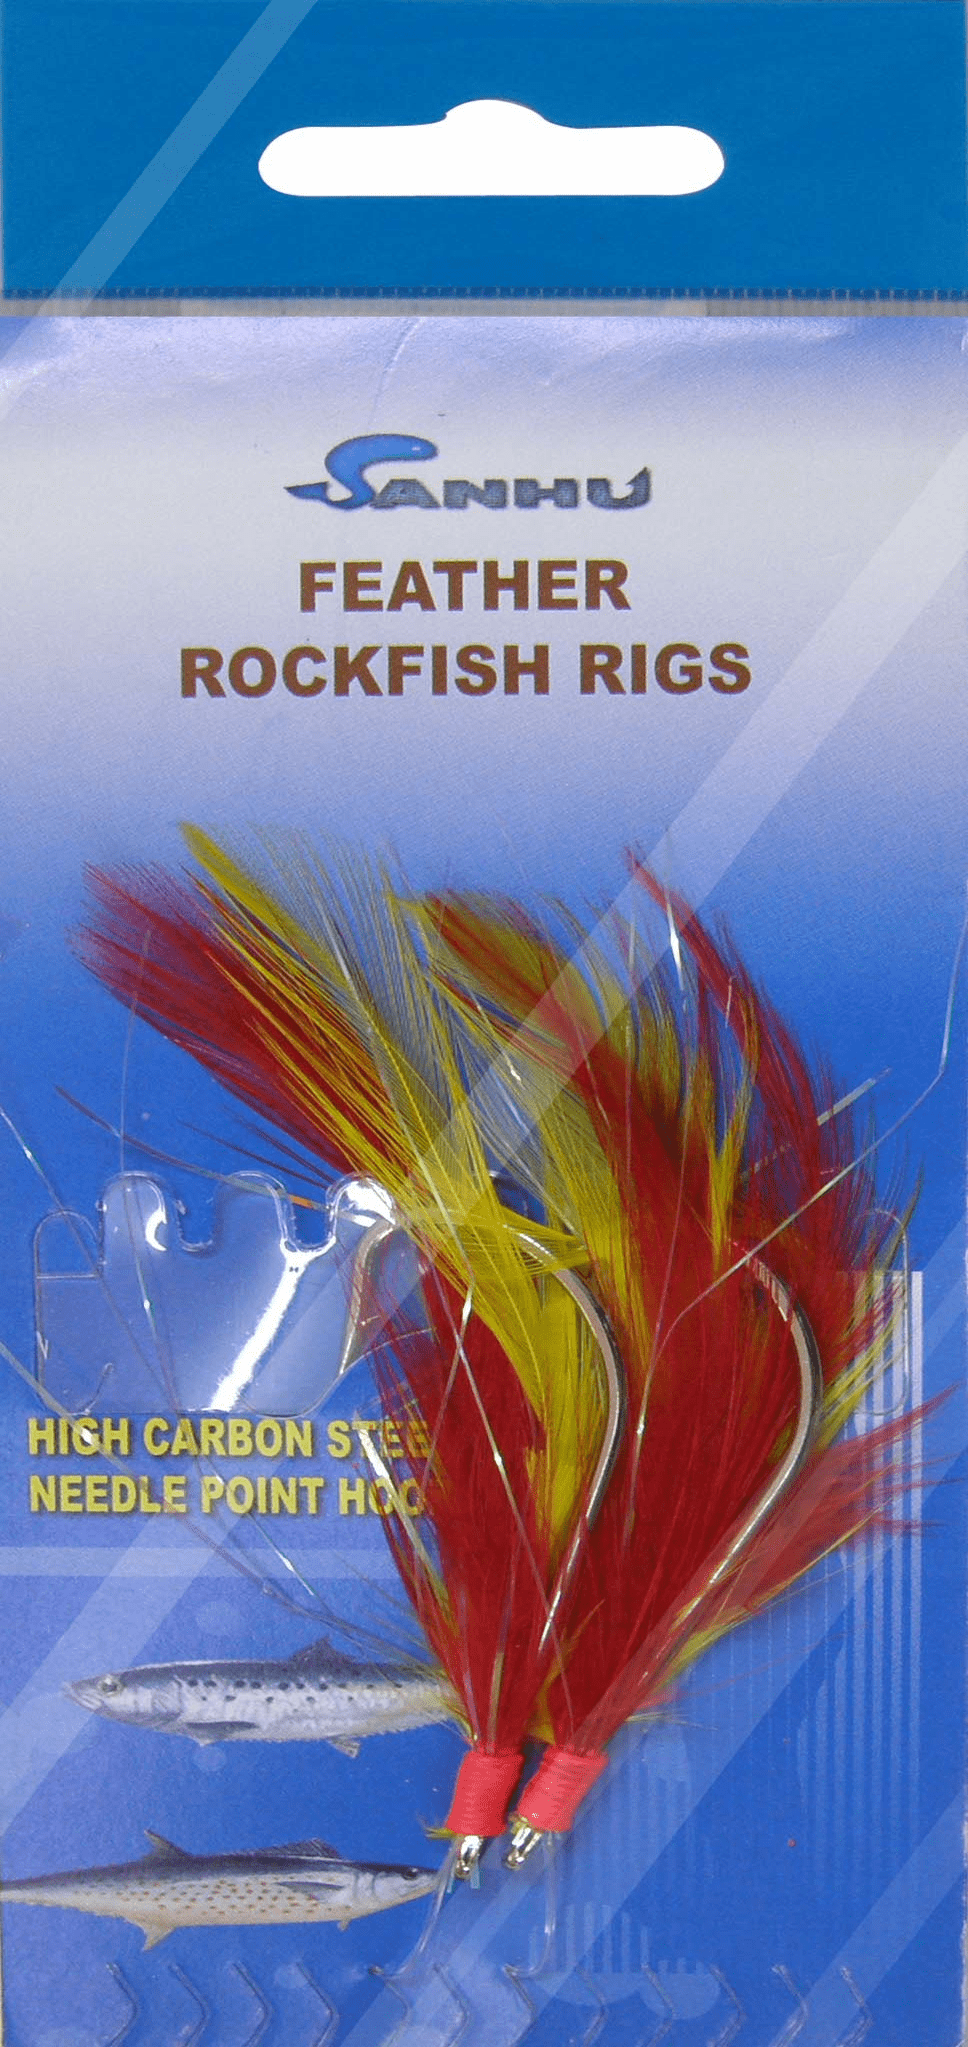 Rocked Feather Rigs